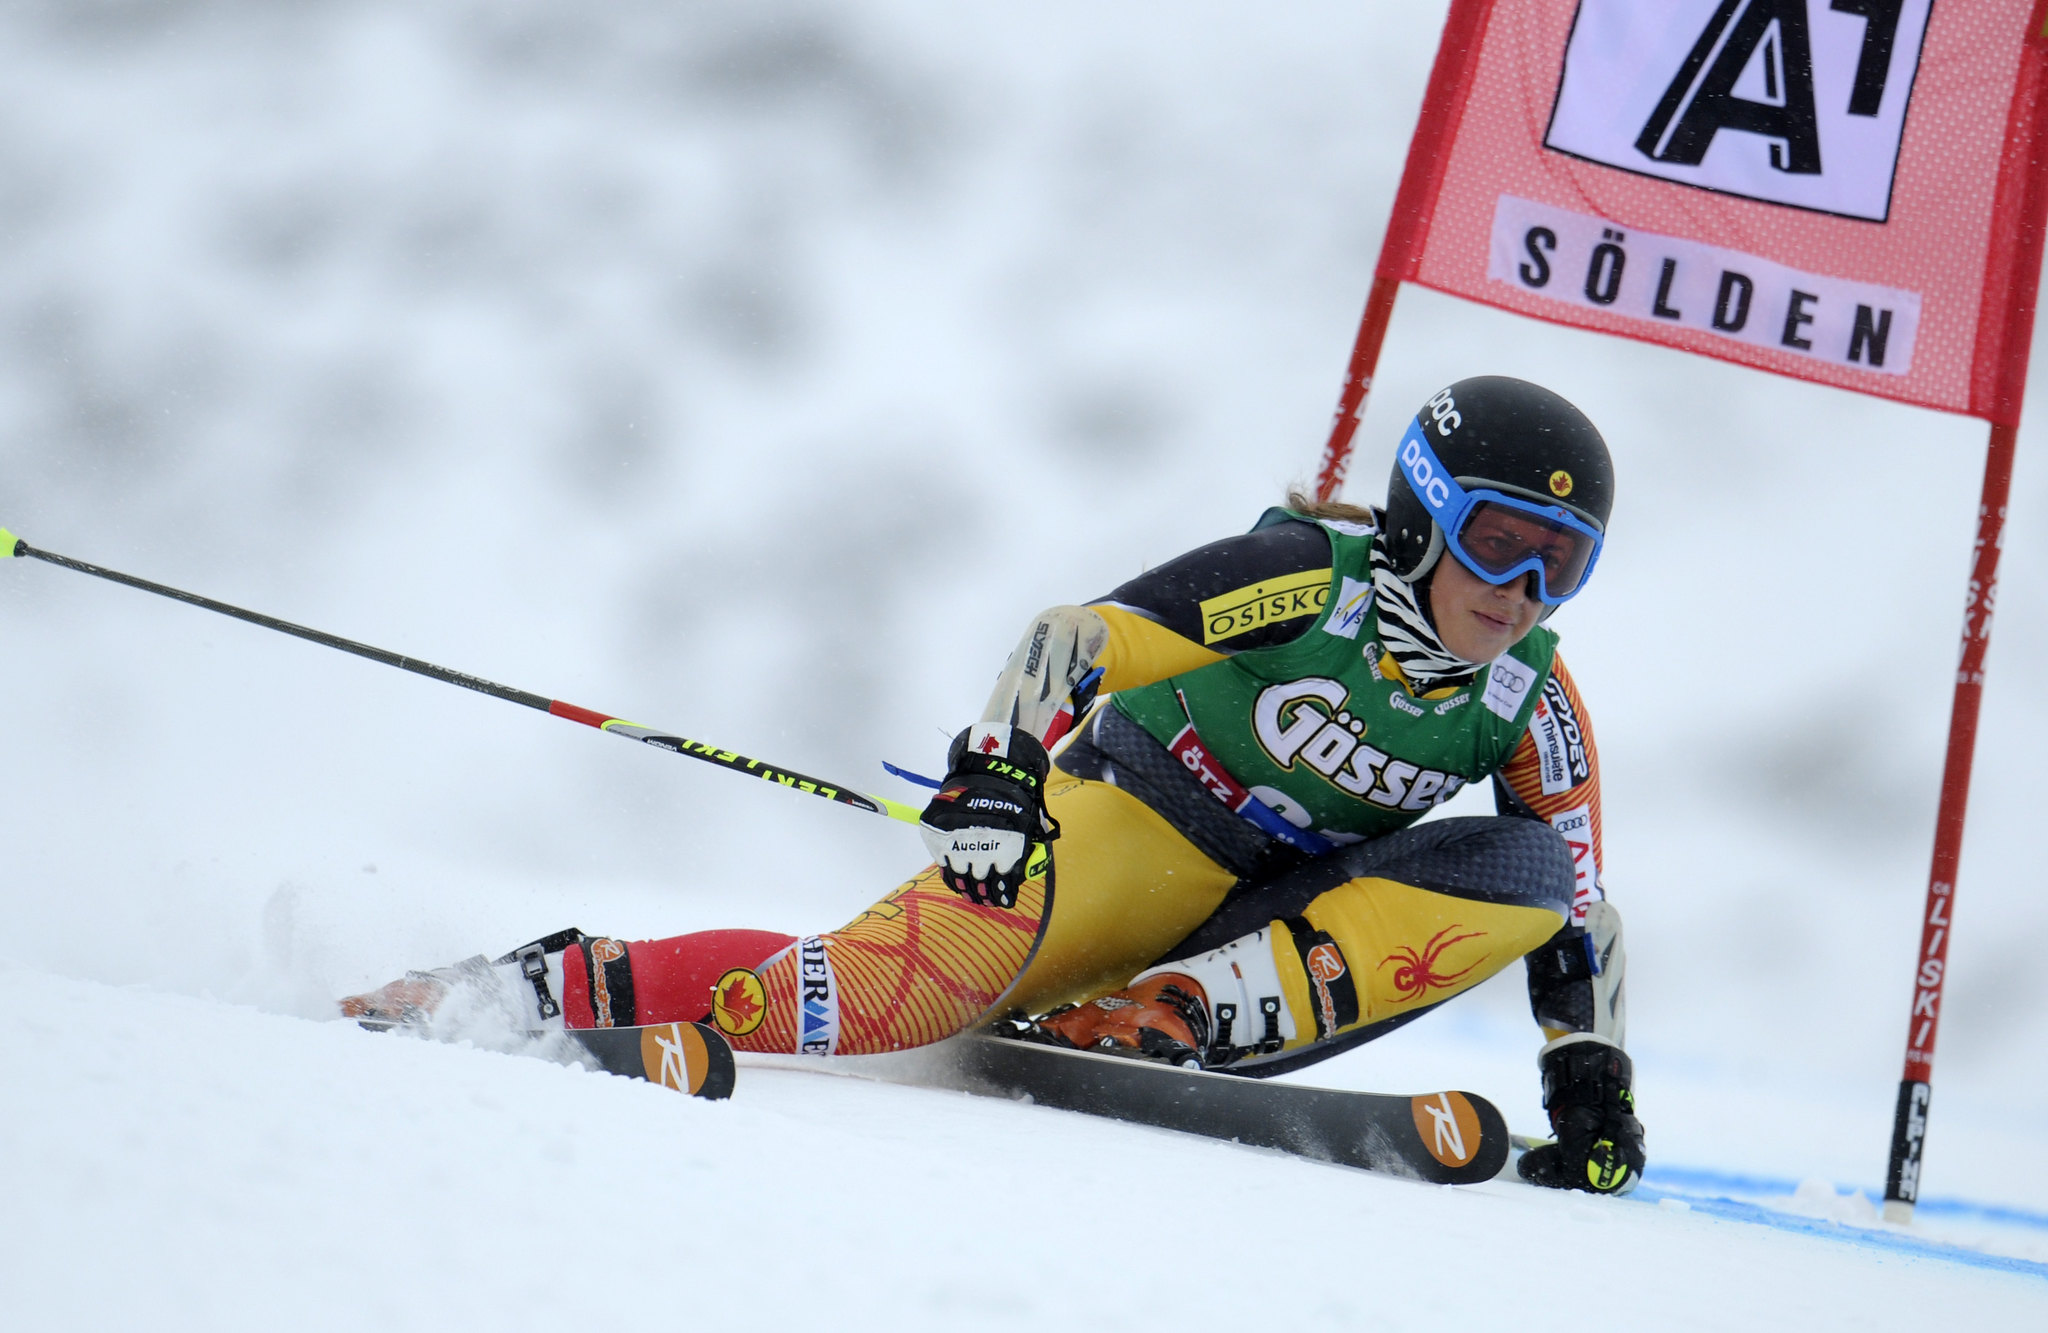 Marie-Pier Préfontaine at the World Cup giant slalom in Soelden, Austria.